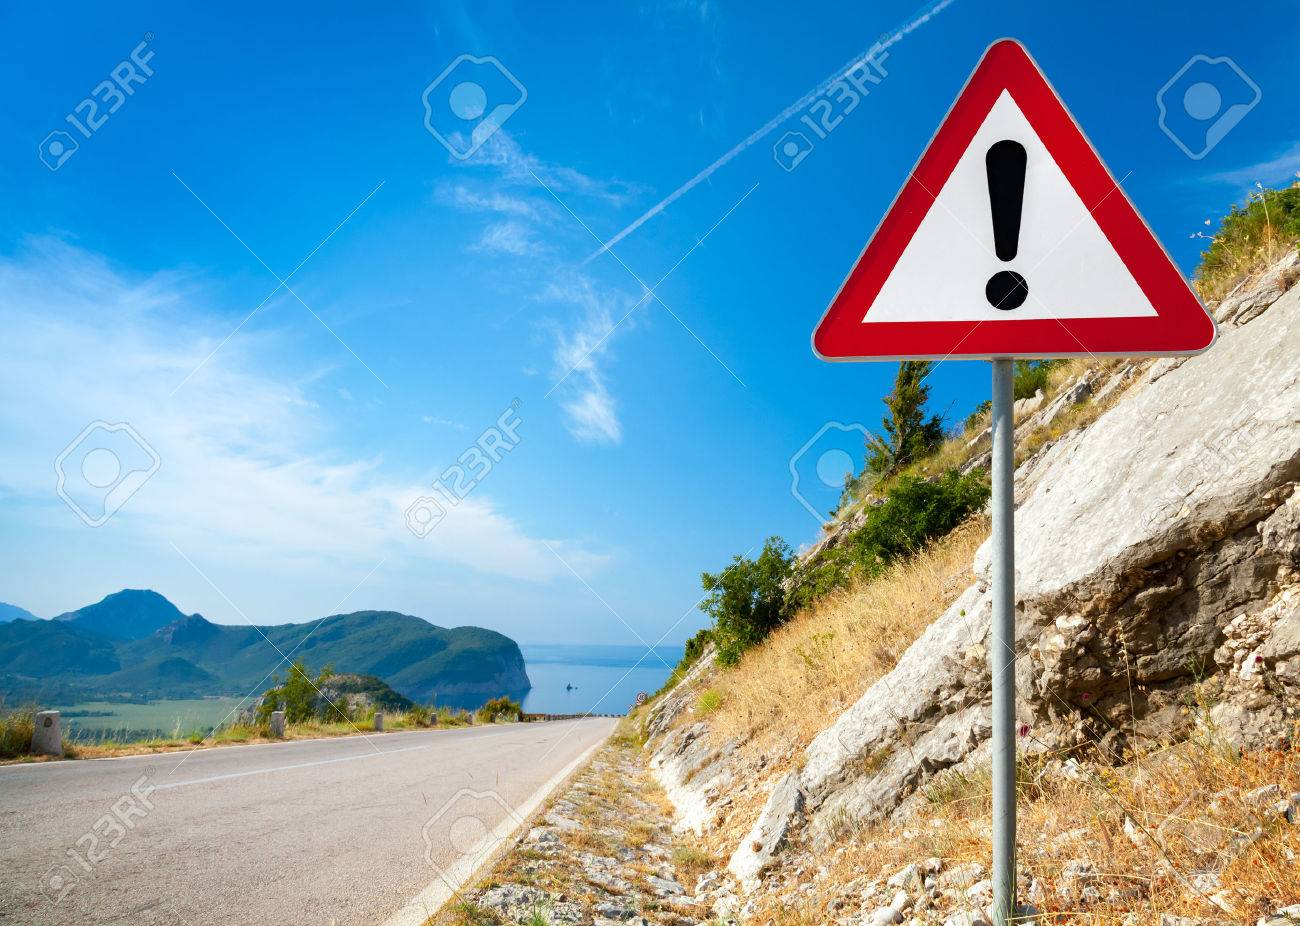 Warning road sign with an exclamation mark in red triangle on mountain highway - 22425557